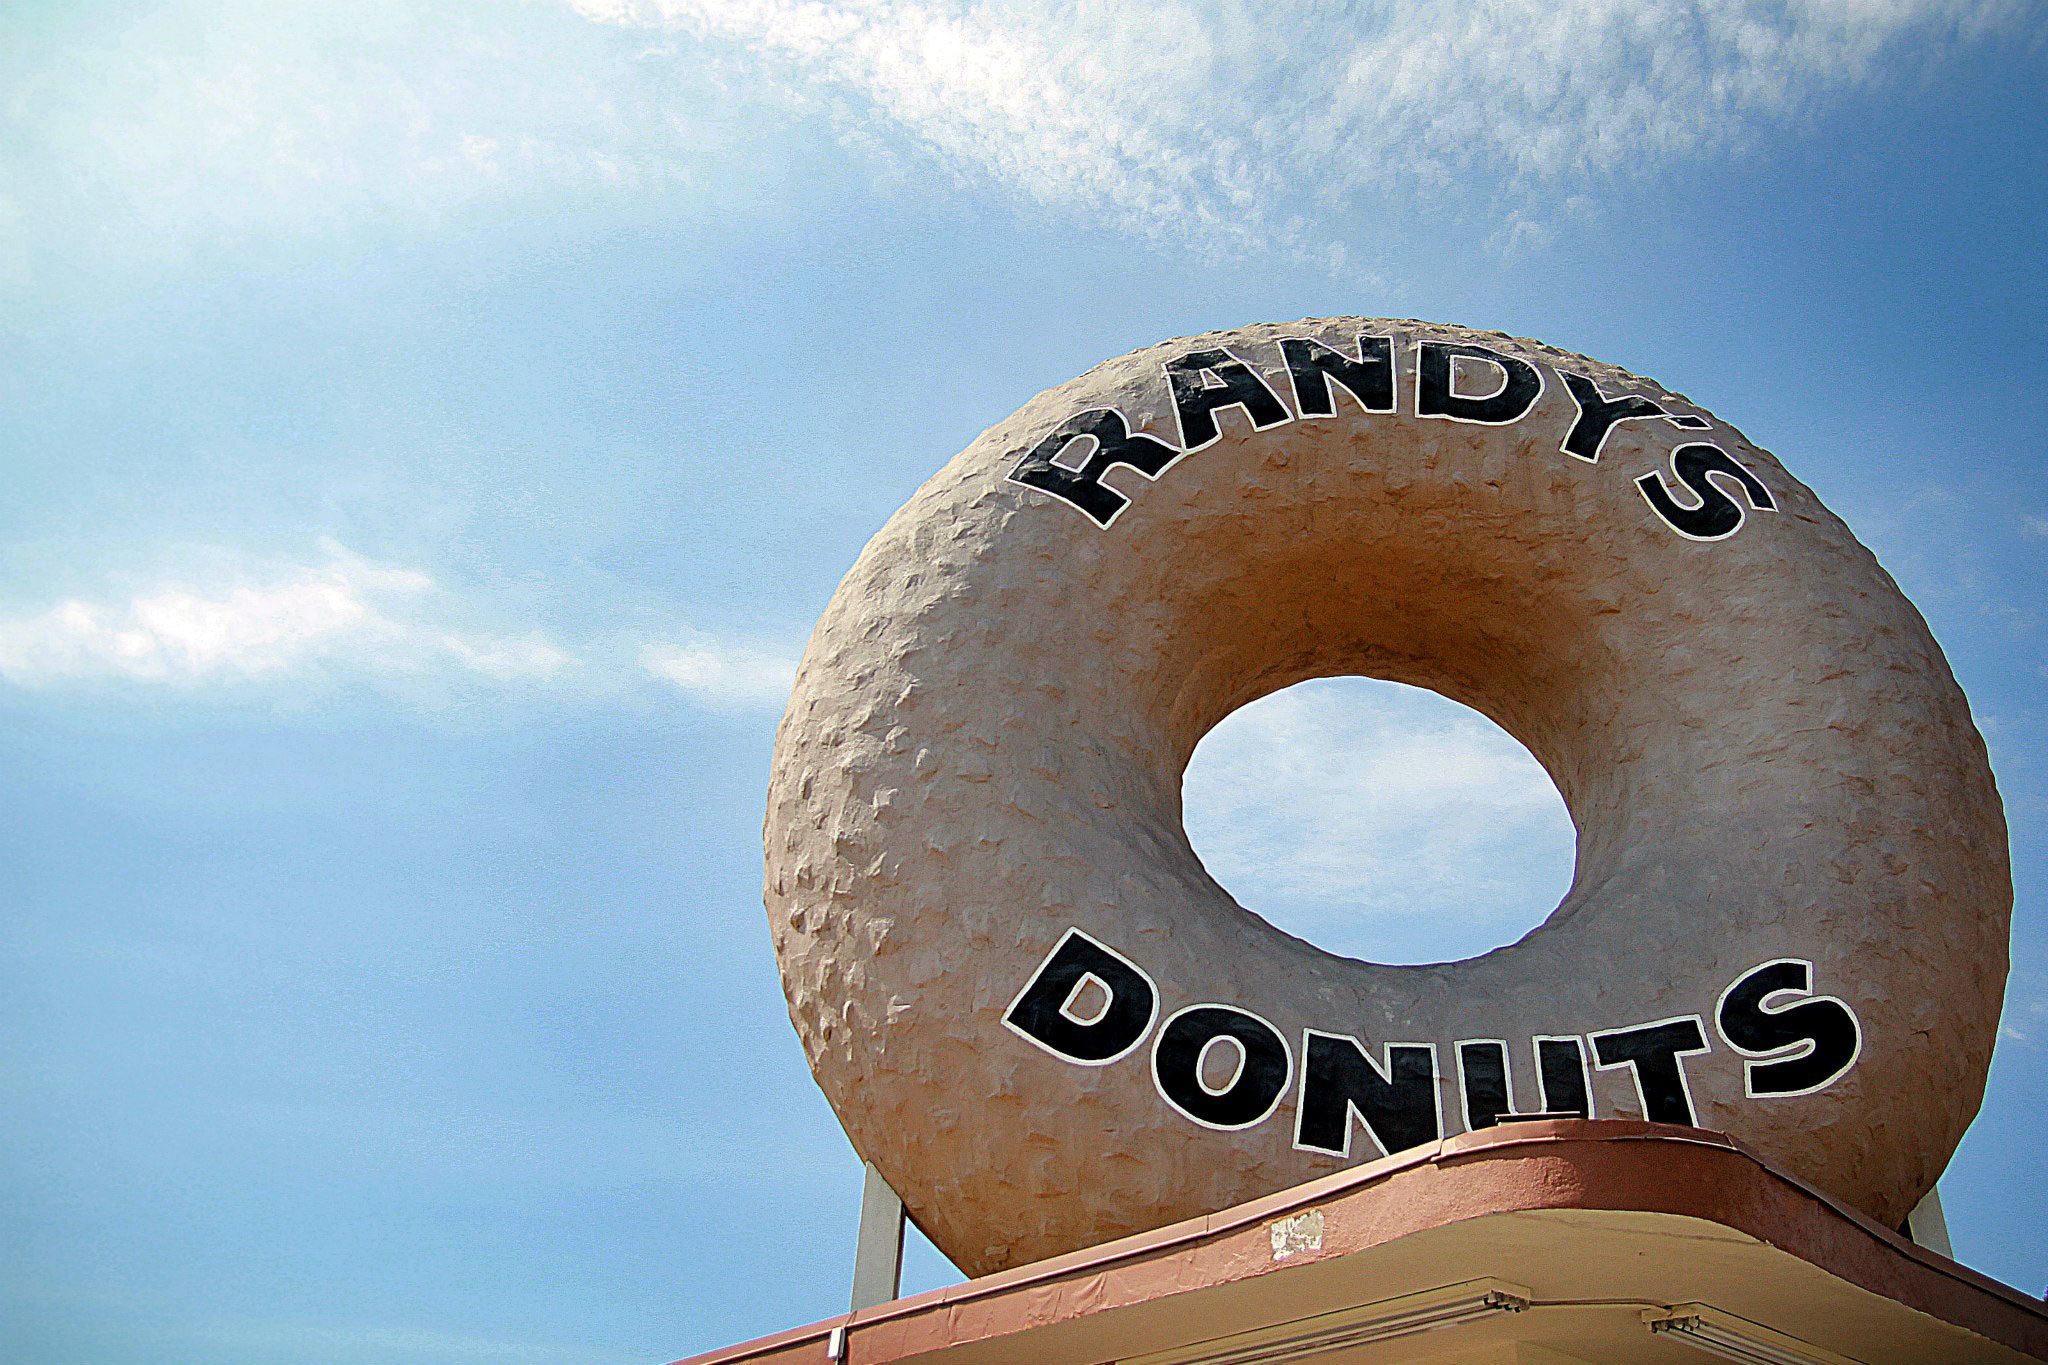 Randy's Donuts opens in Hollywood on Monday